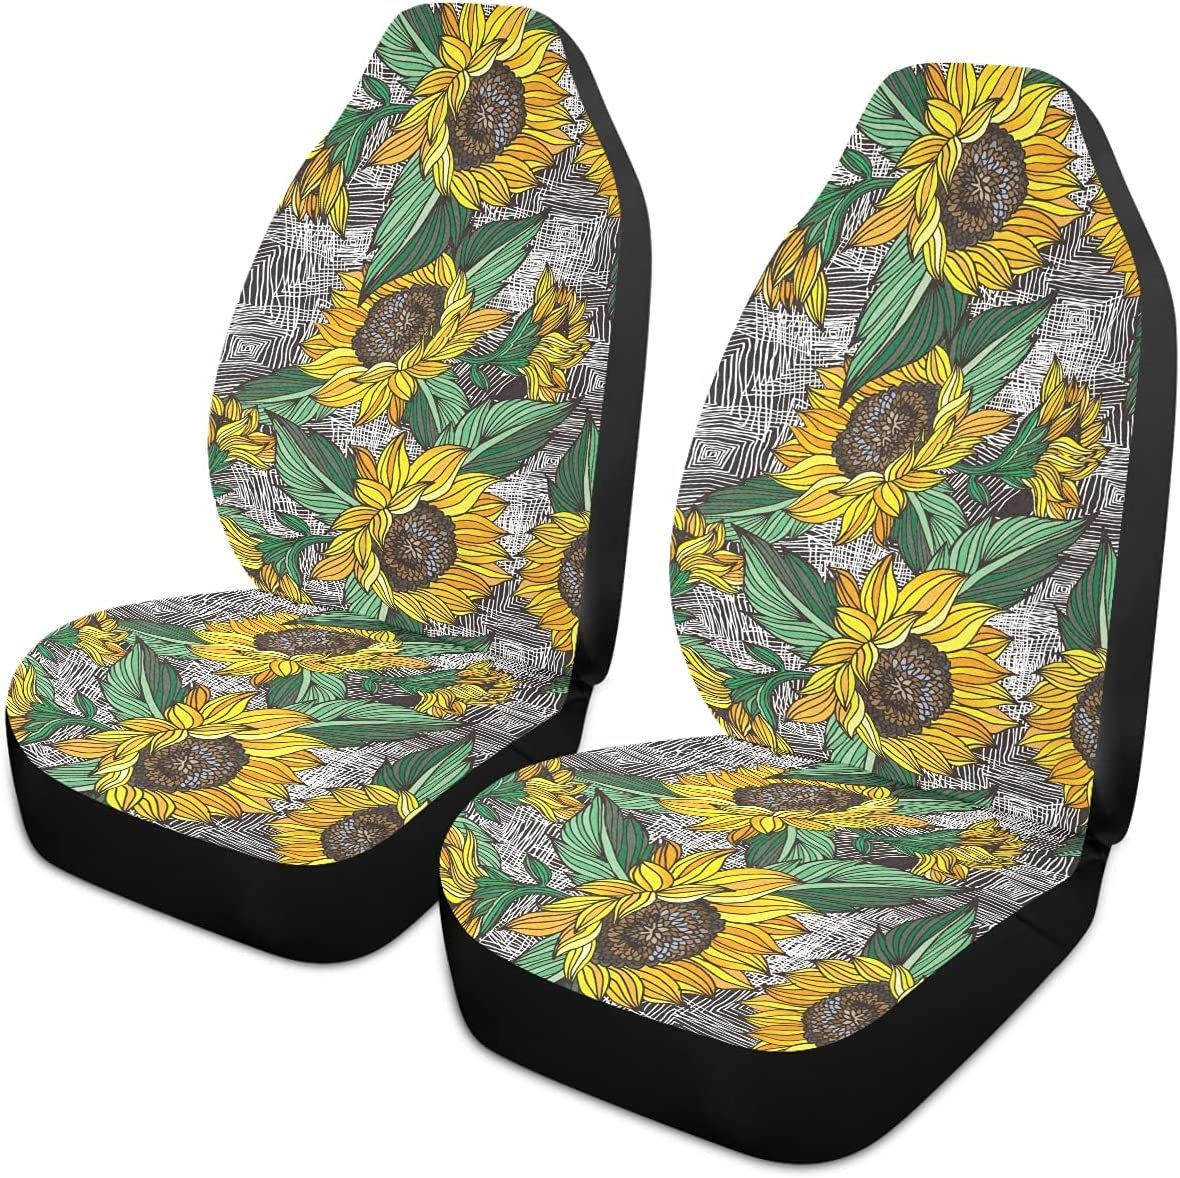 Oarencol Sunflowers Car Seat Covers White Unive Art Free Shipping Cheap Bargain Gift Line Vintage We OFFer at cheap prices